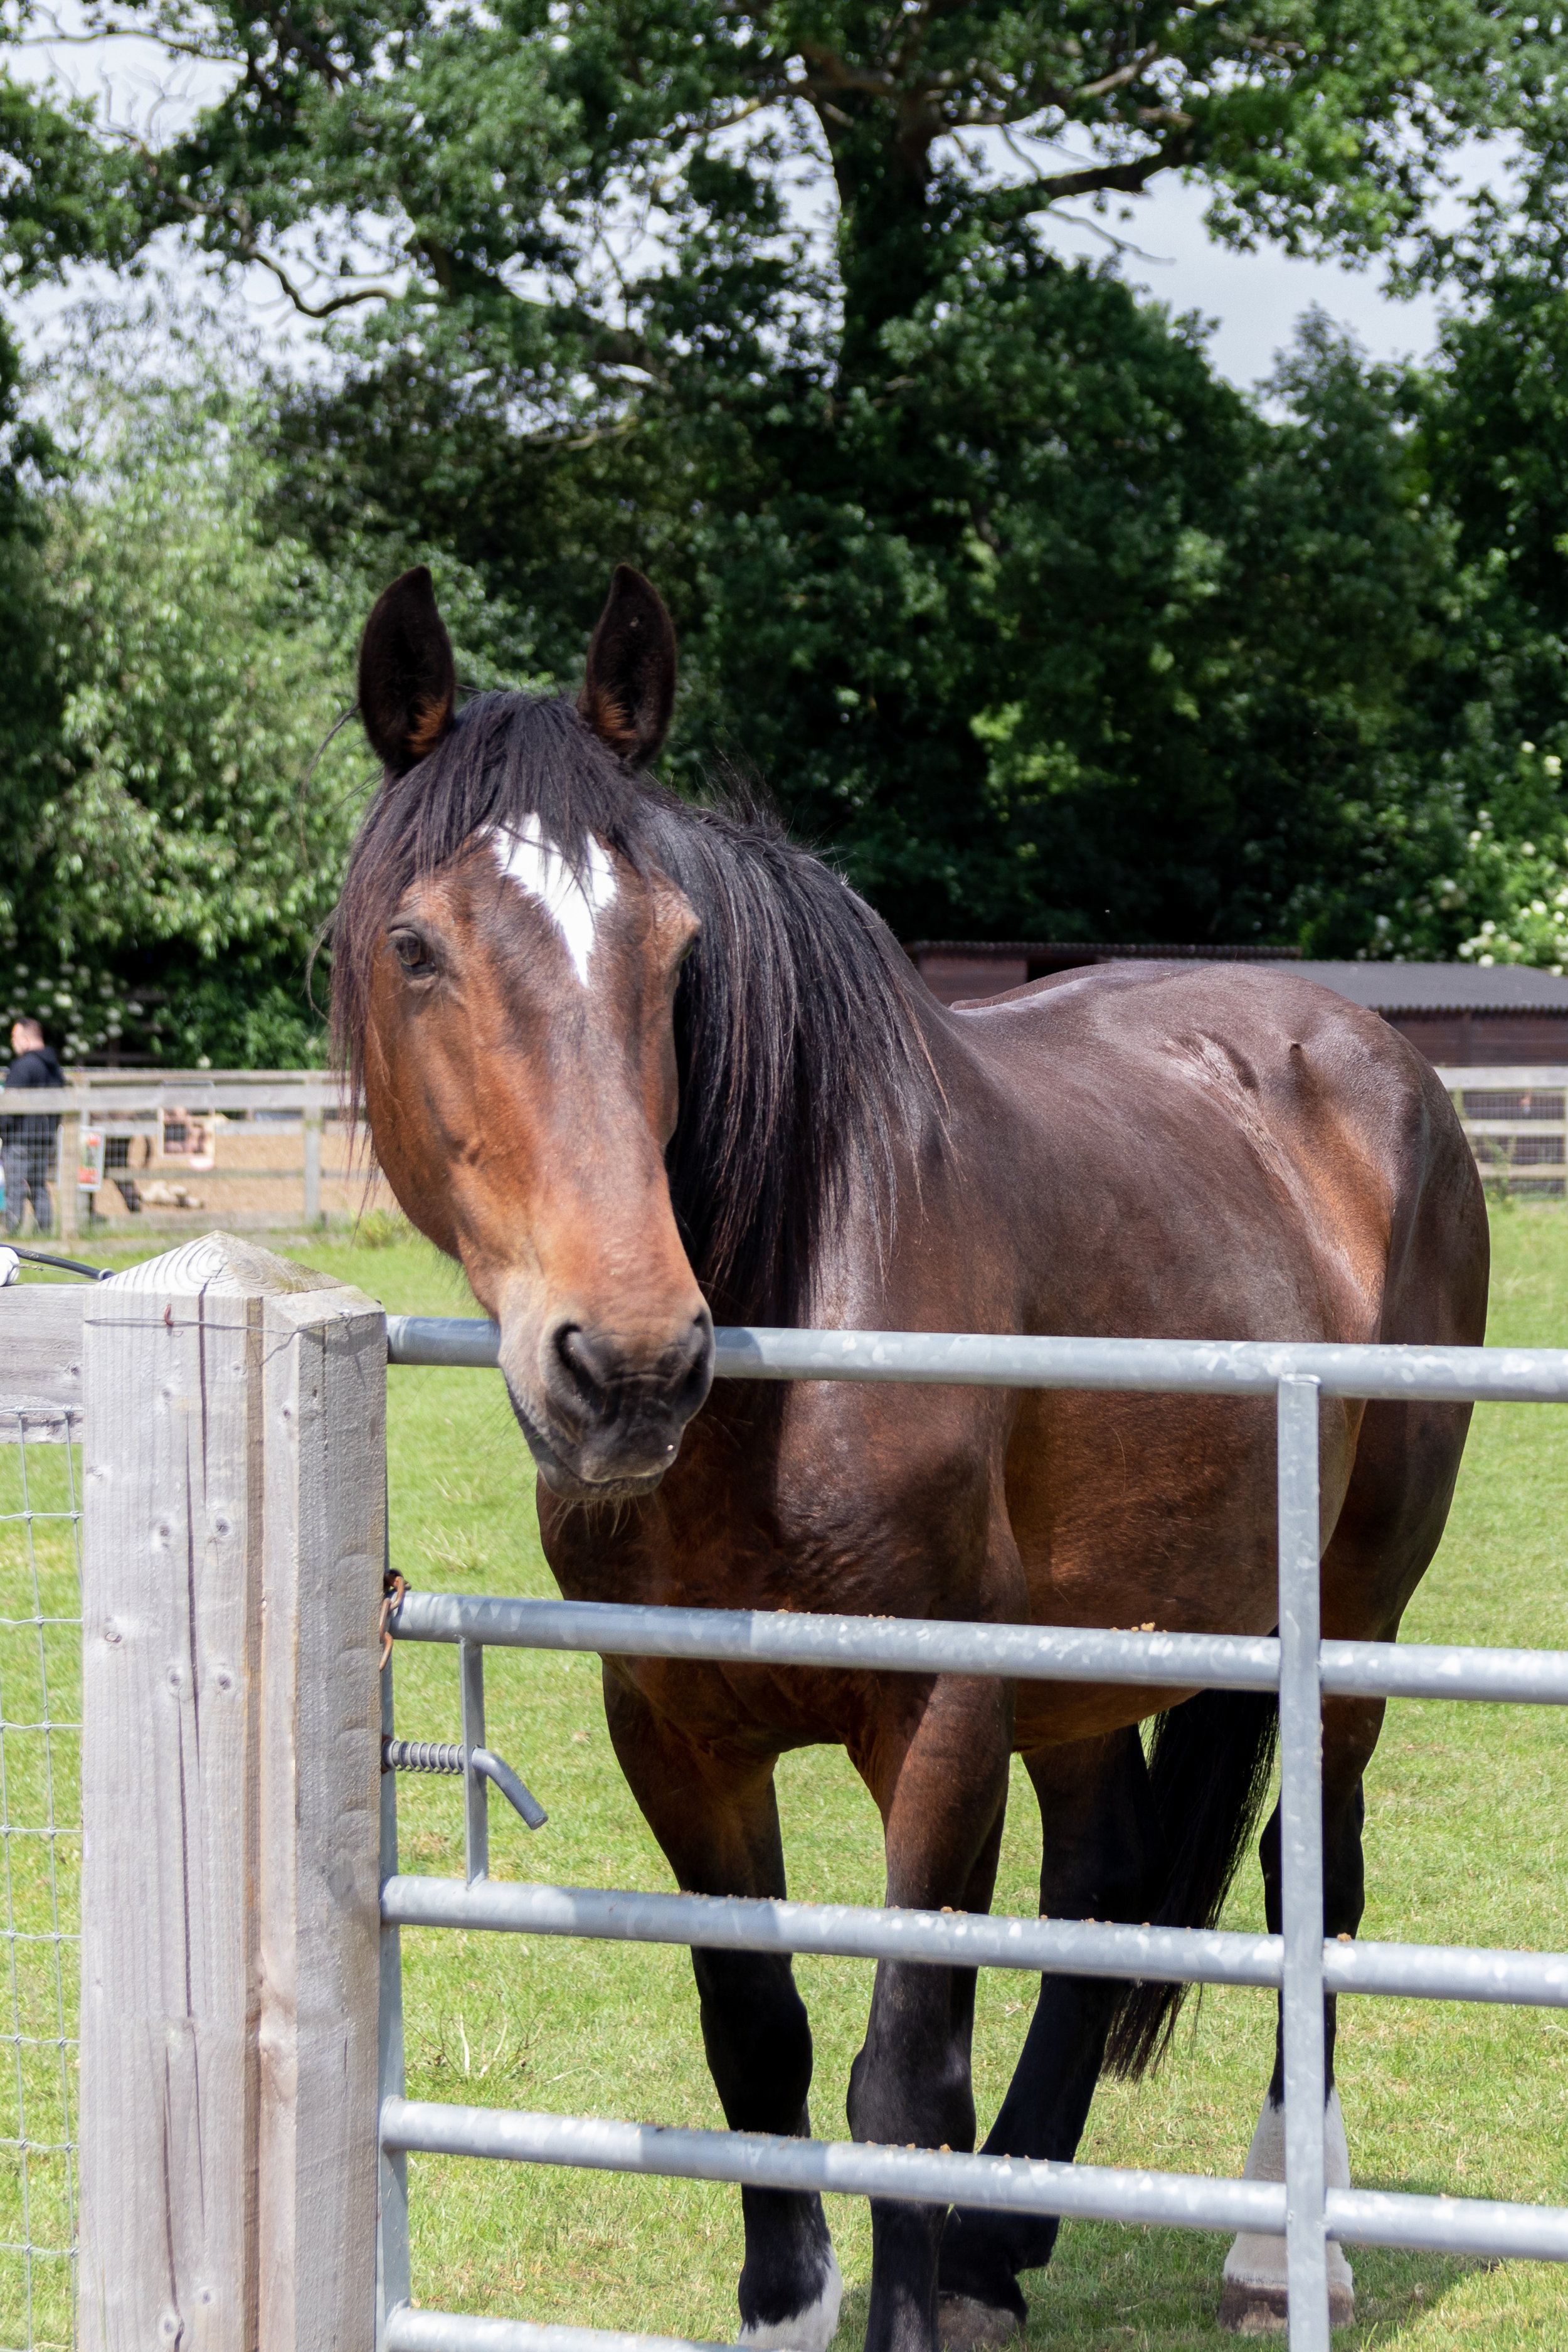 Carmen will probably stay at Redwings to receive speclaist care